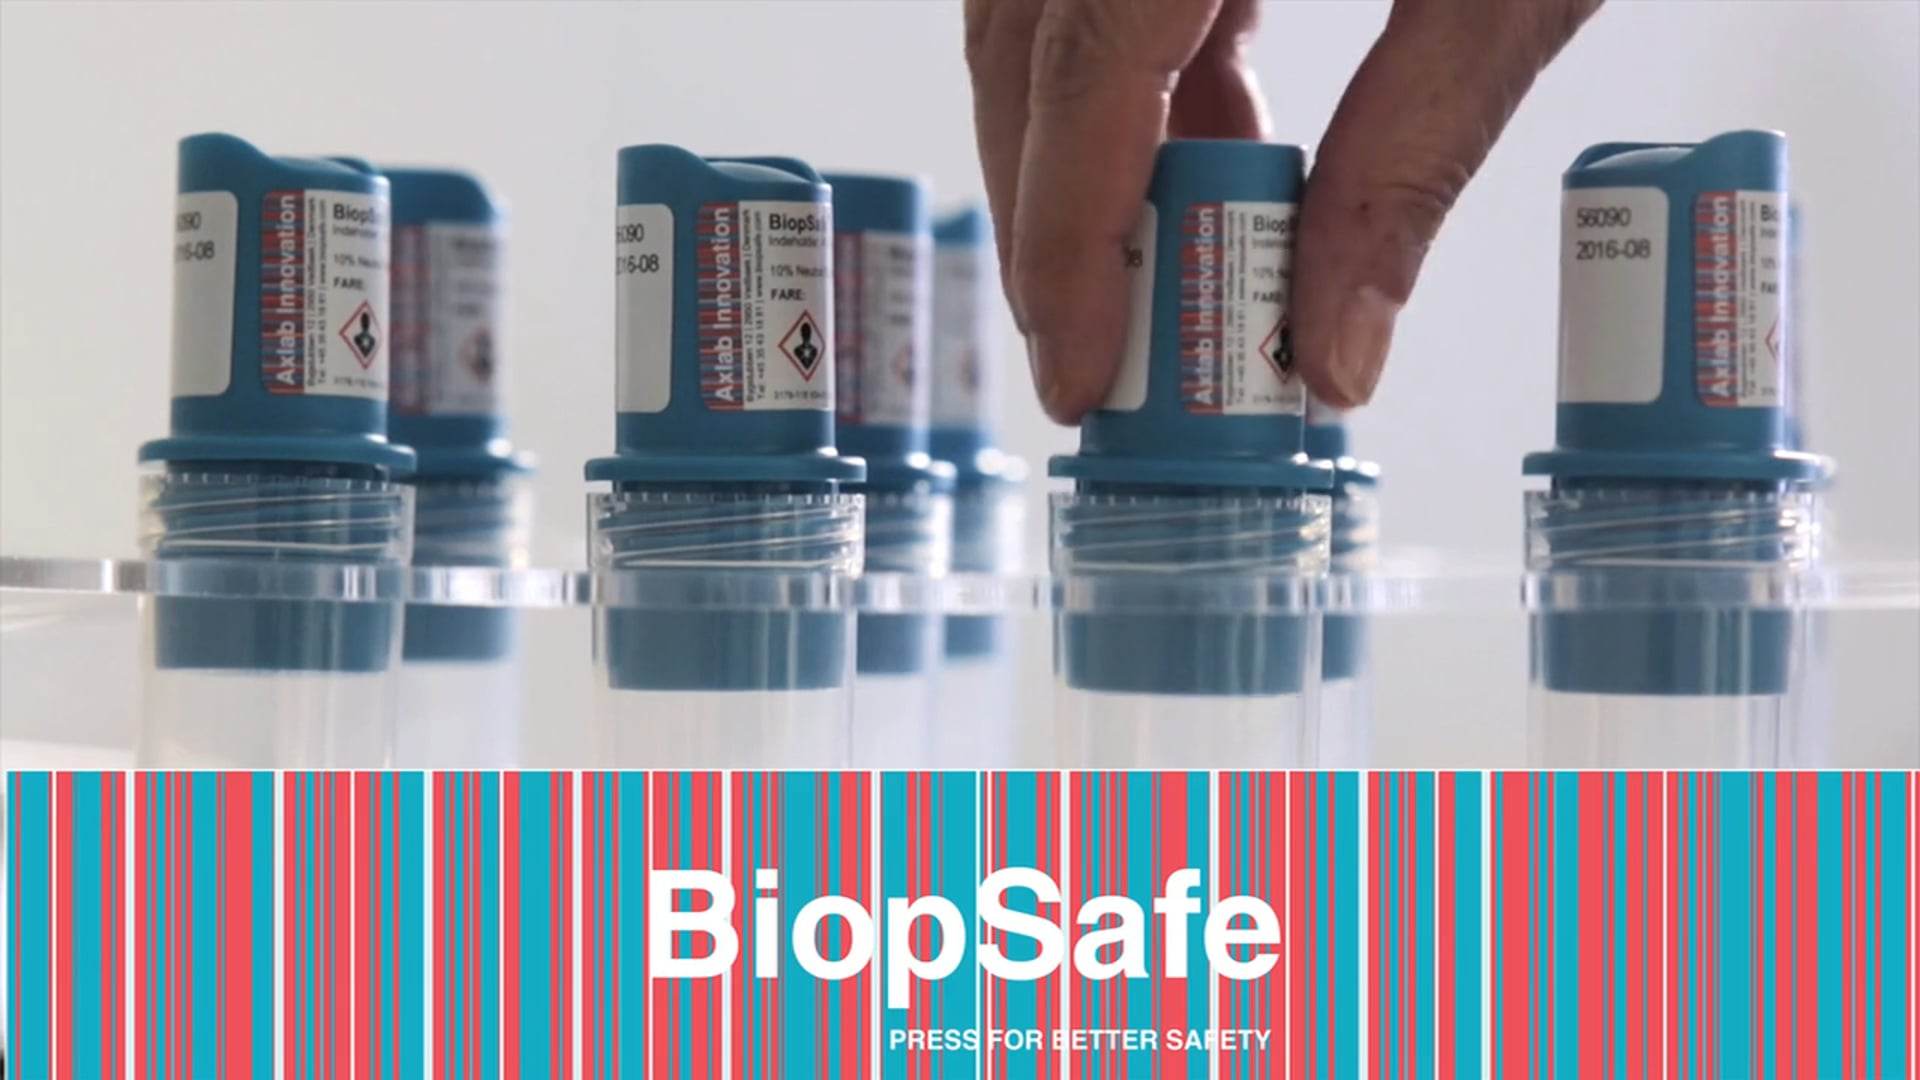 BiopSafe Introduction